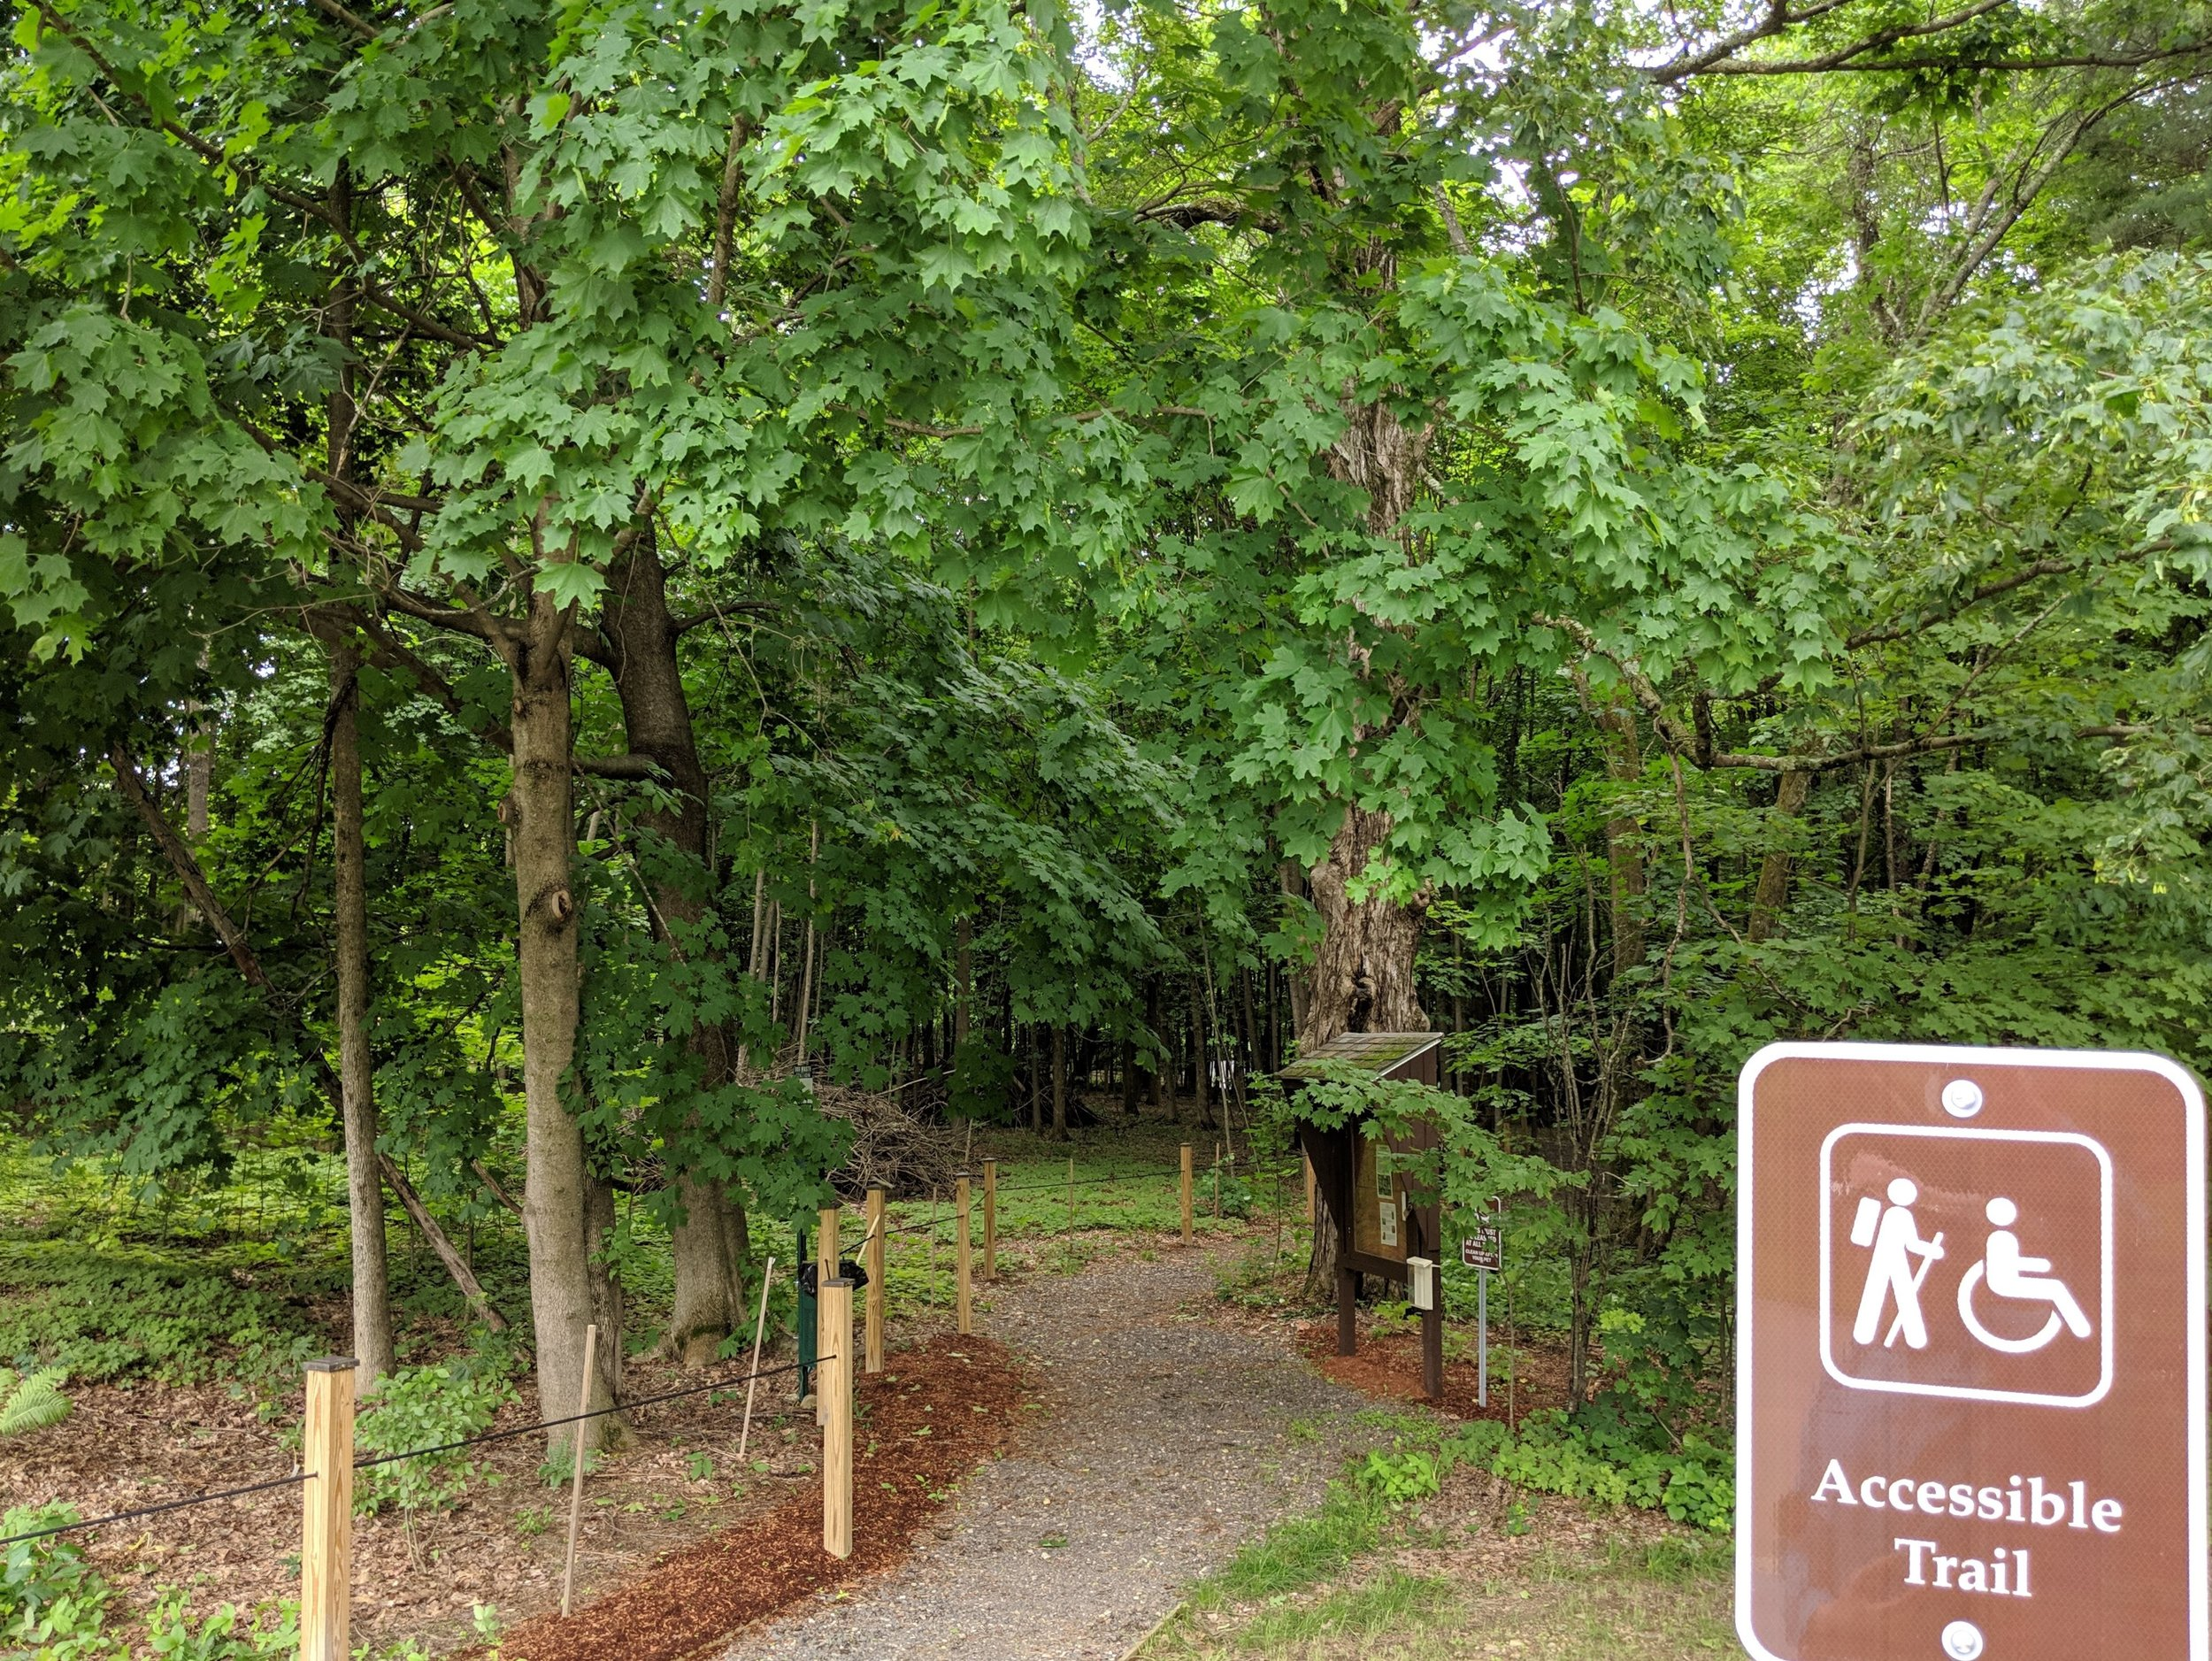 The accessible nature trail in Pepperell.